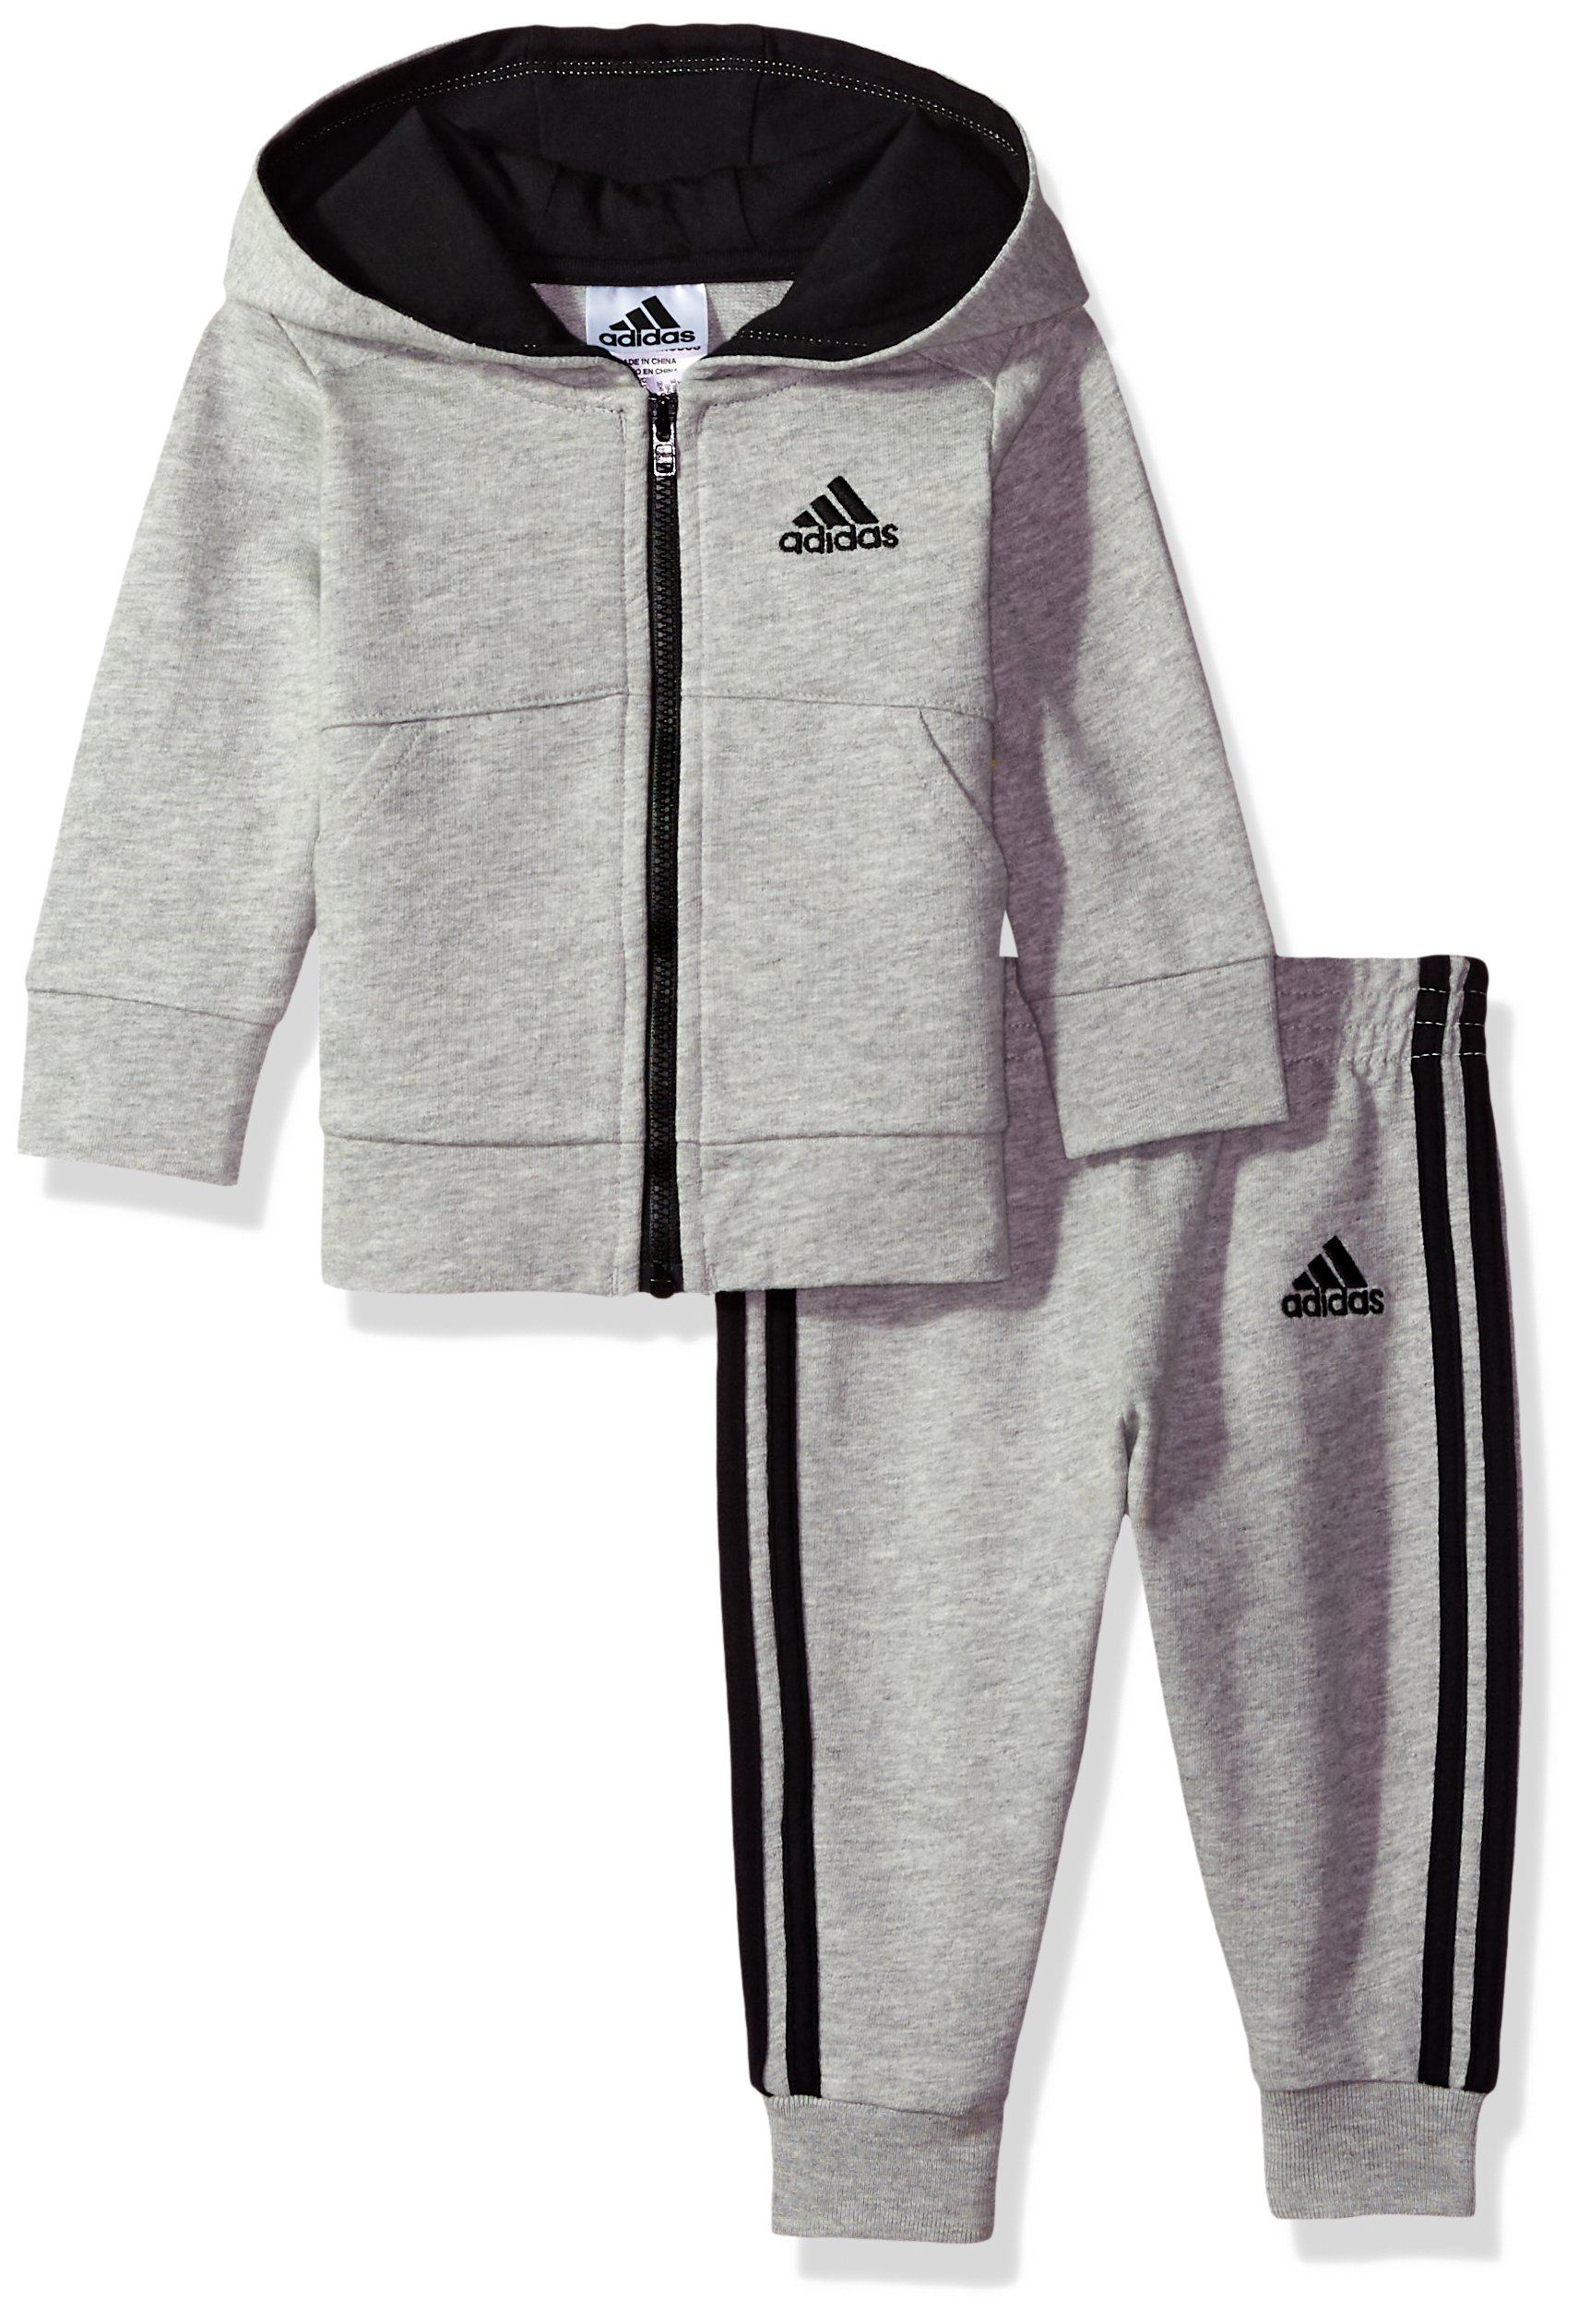 adidas Baby Boys Jacket Set, Grey Heather, 3M